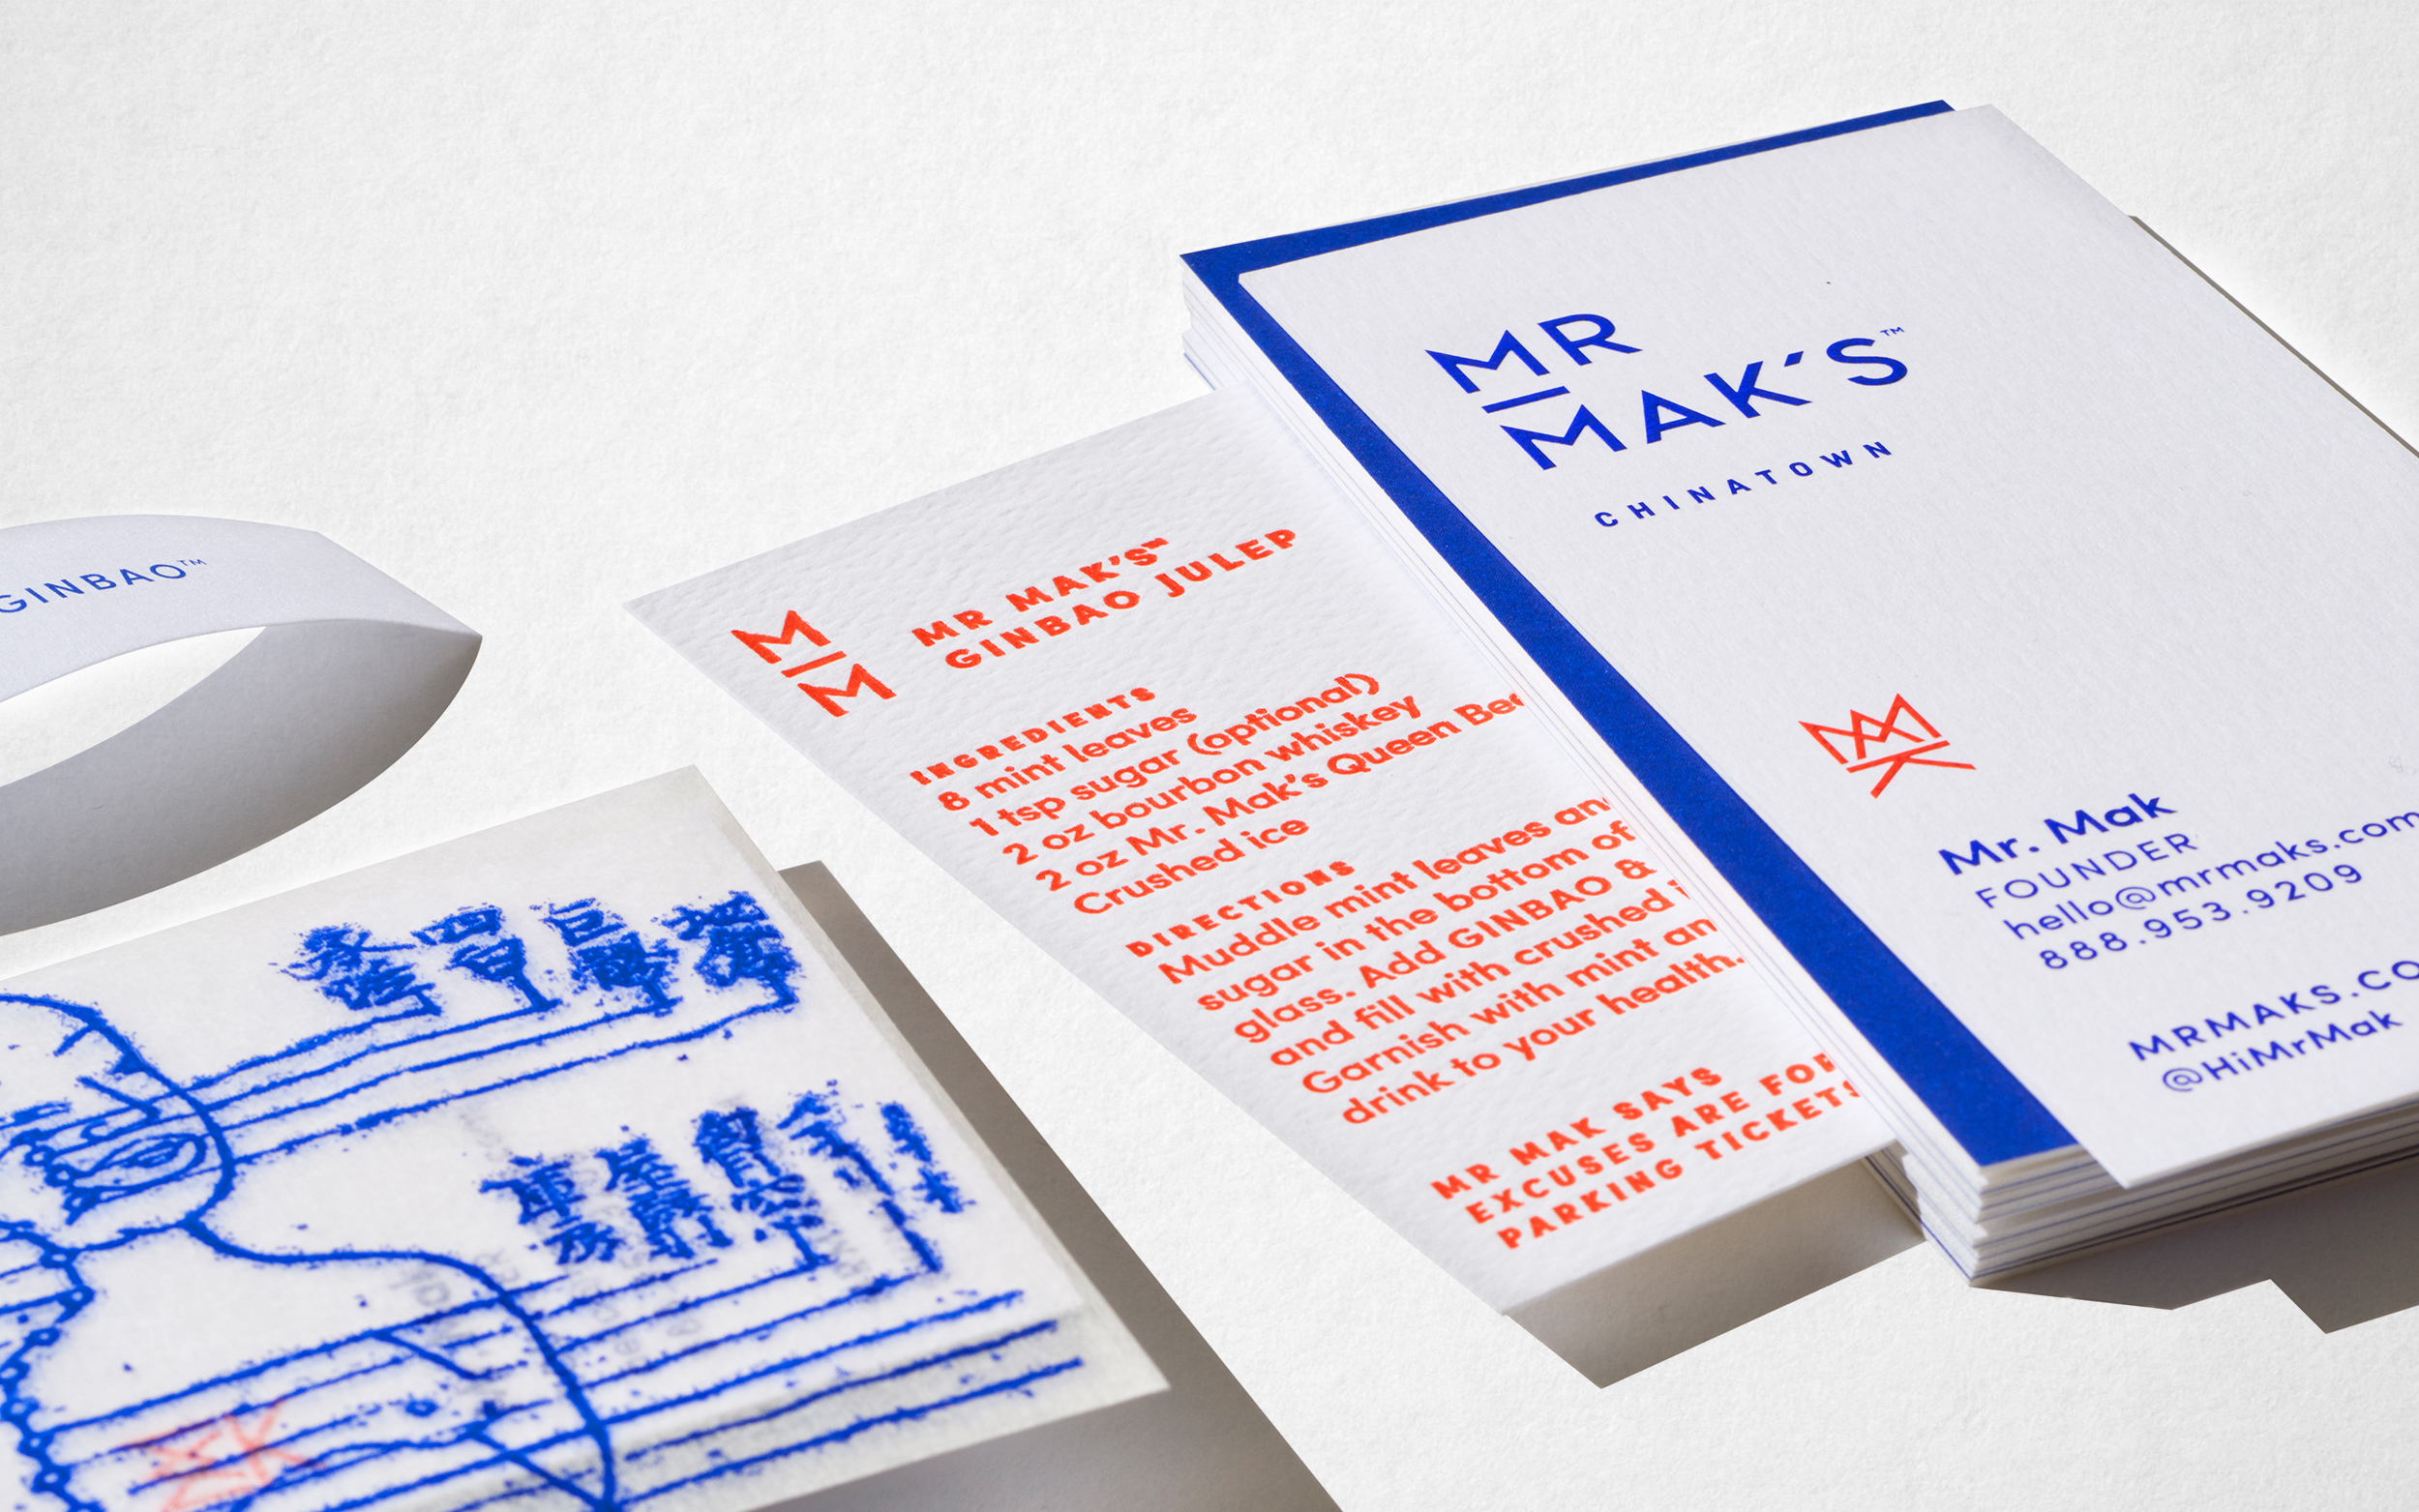 Mr. Mak's Ginbao branding, designed by Abby Haddican.